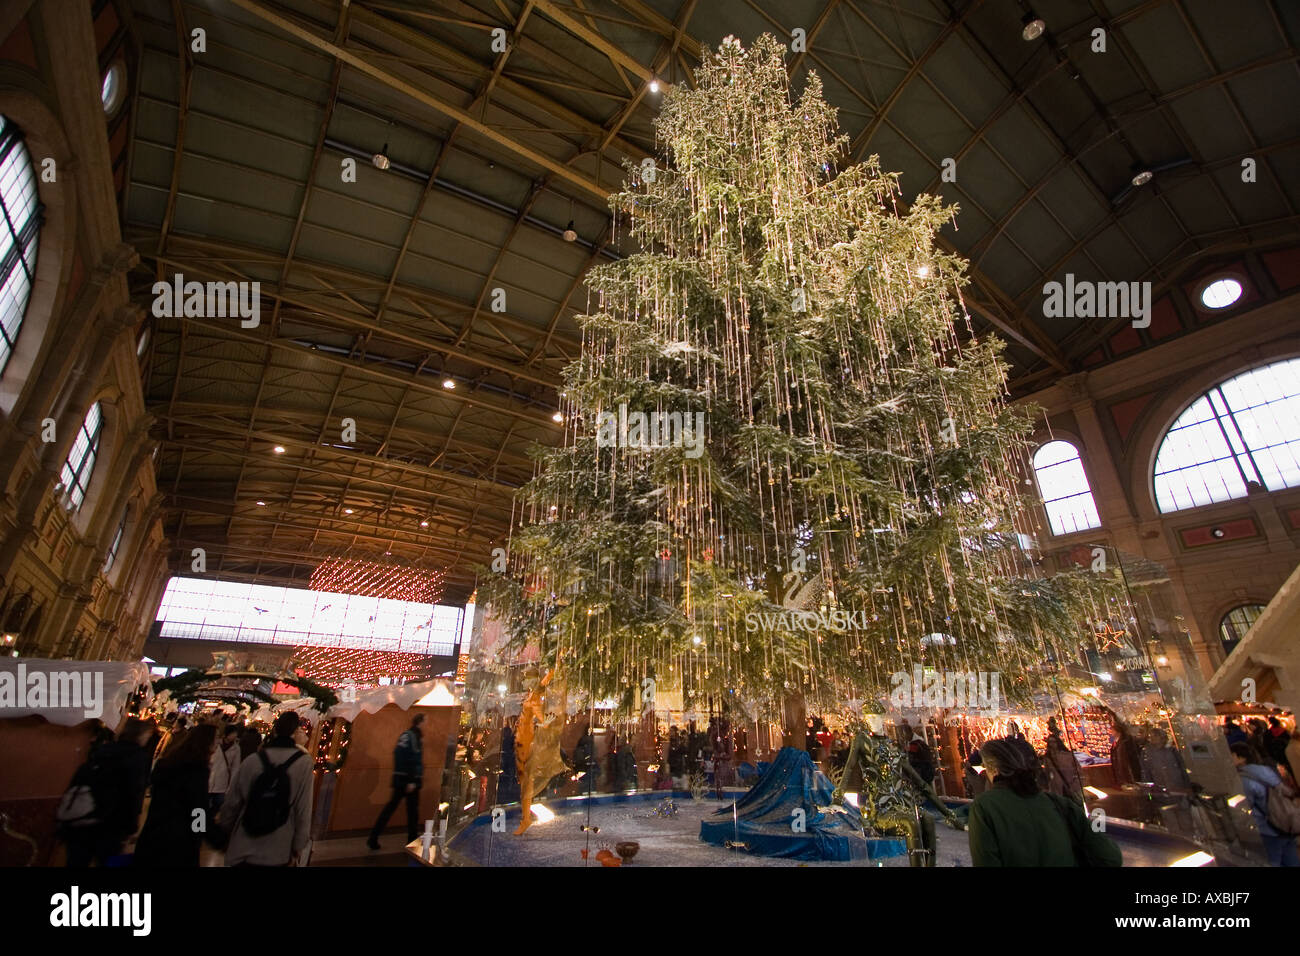 Switzerland Zurich main station christmas illumination christmas tree from Sawarowski with - Stock Image